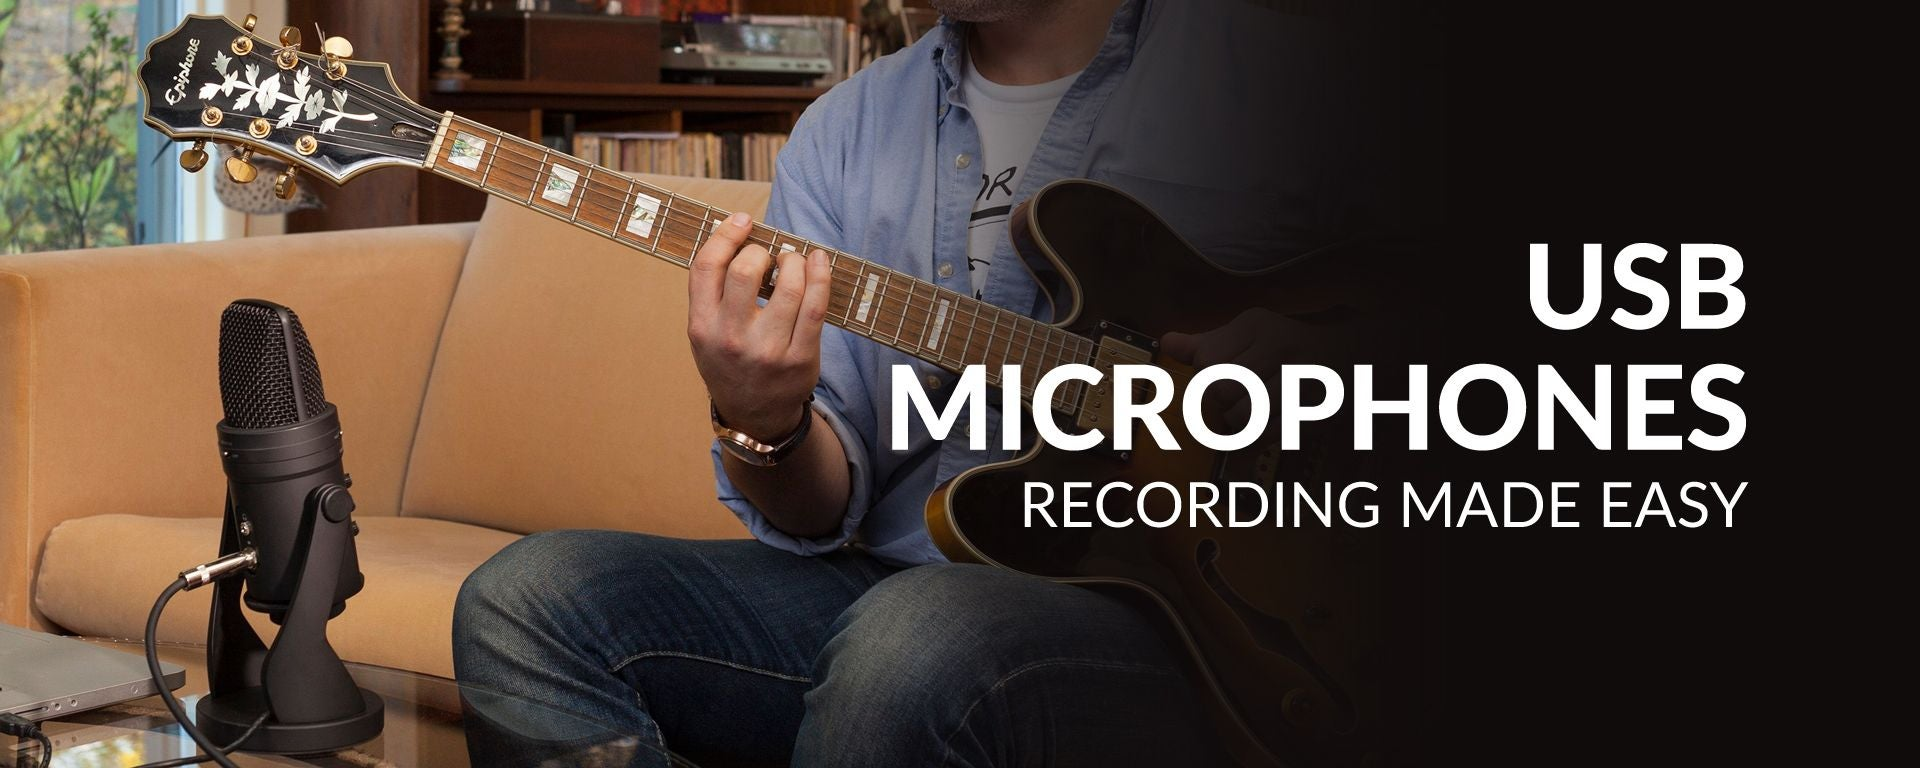 USB Microphone For Easy Recording At Sam Ash